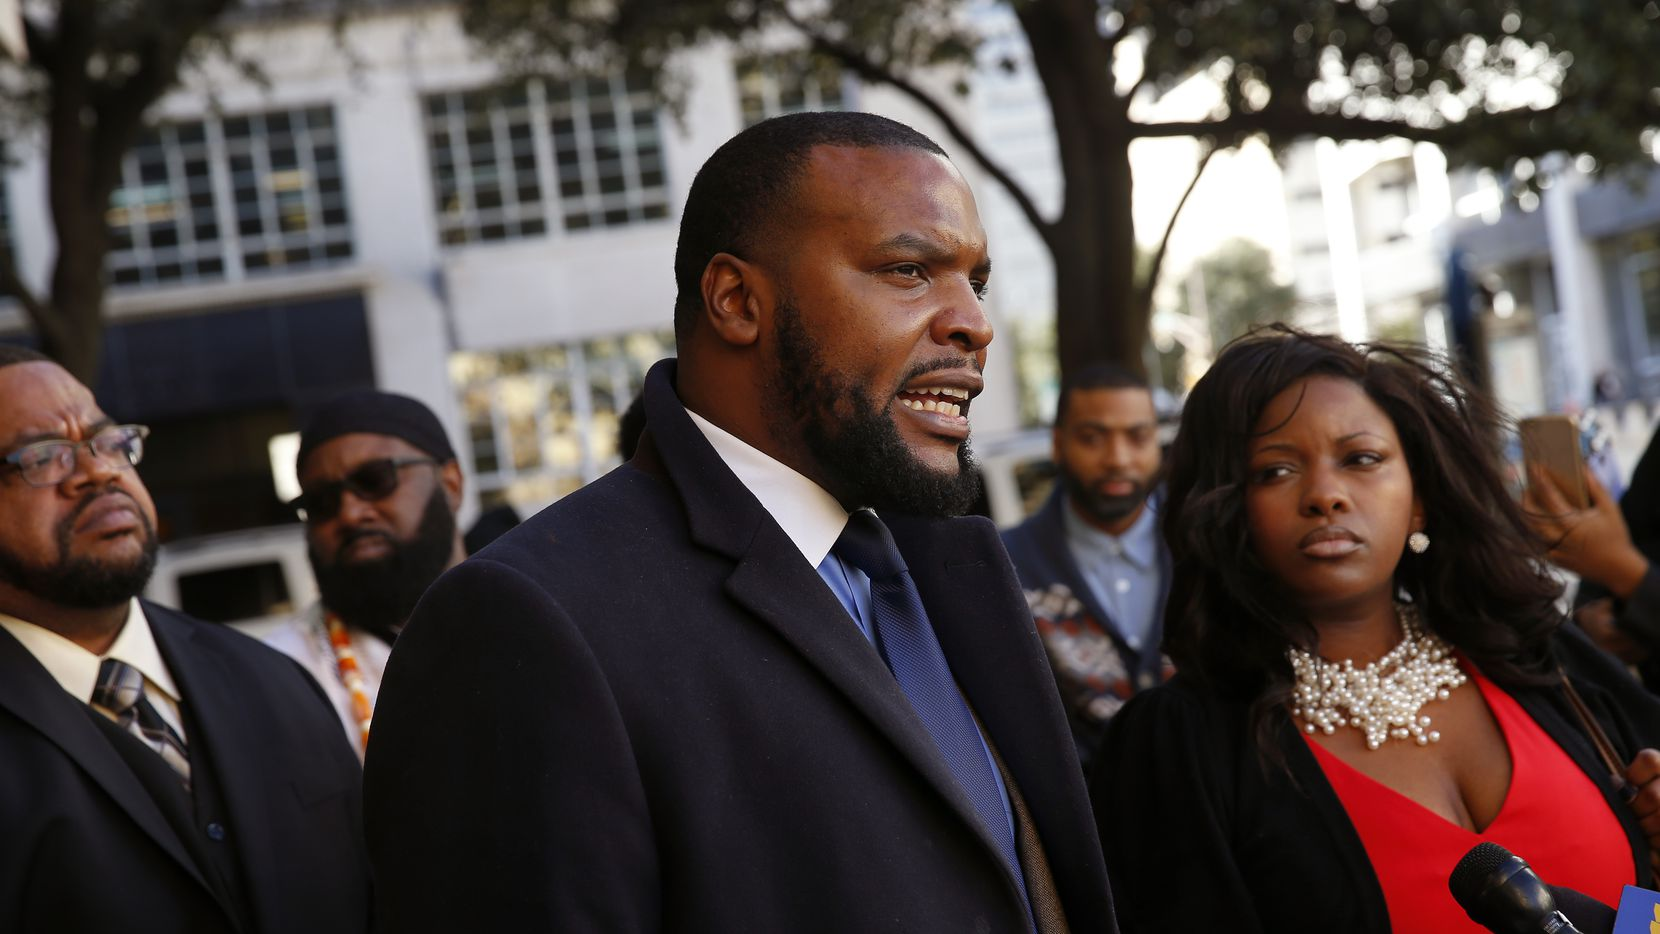 Civil rights lawyer Lee Merritt, shown addressing the news media outside Fort Worth City Hall in 2019, says Attorney General Ken Paxton hasn't done enough to train police or provide mental health services for those in need.